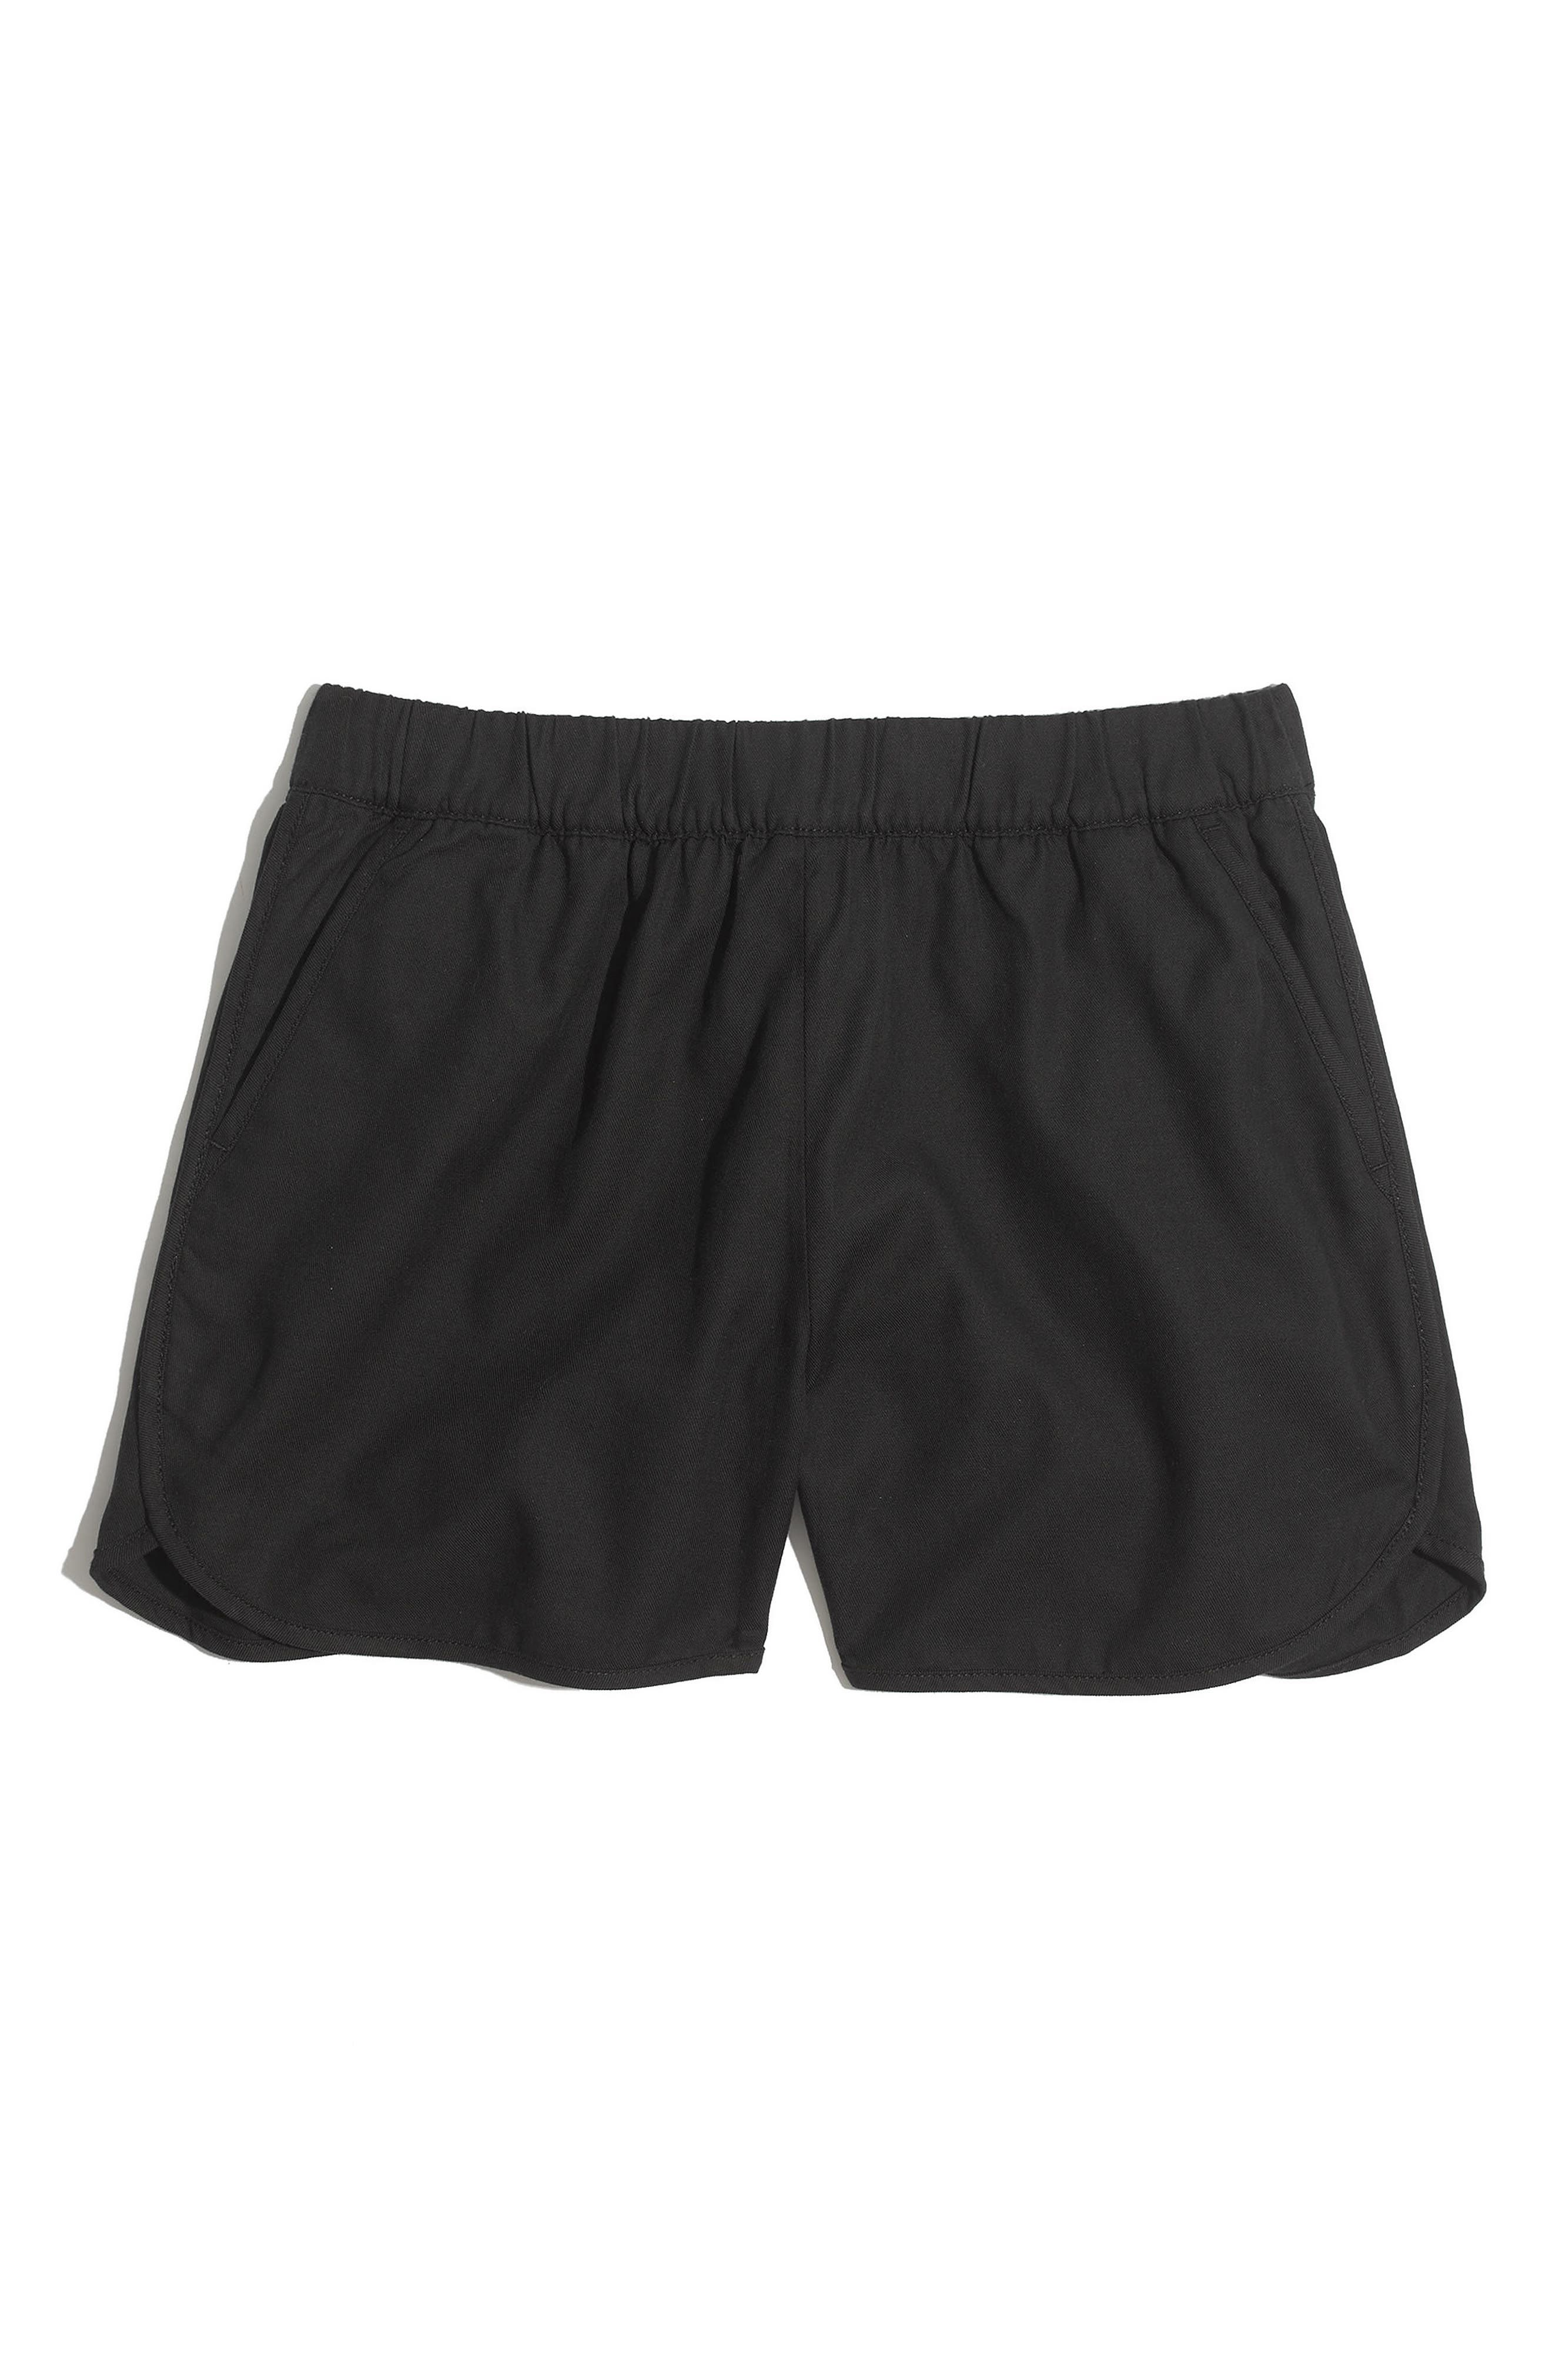 Pull-On Shorts,                             Alternate thumbnail 6, color,                             Almost Black